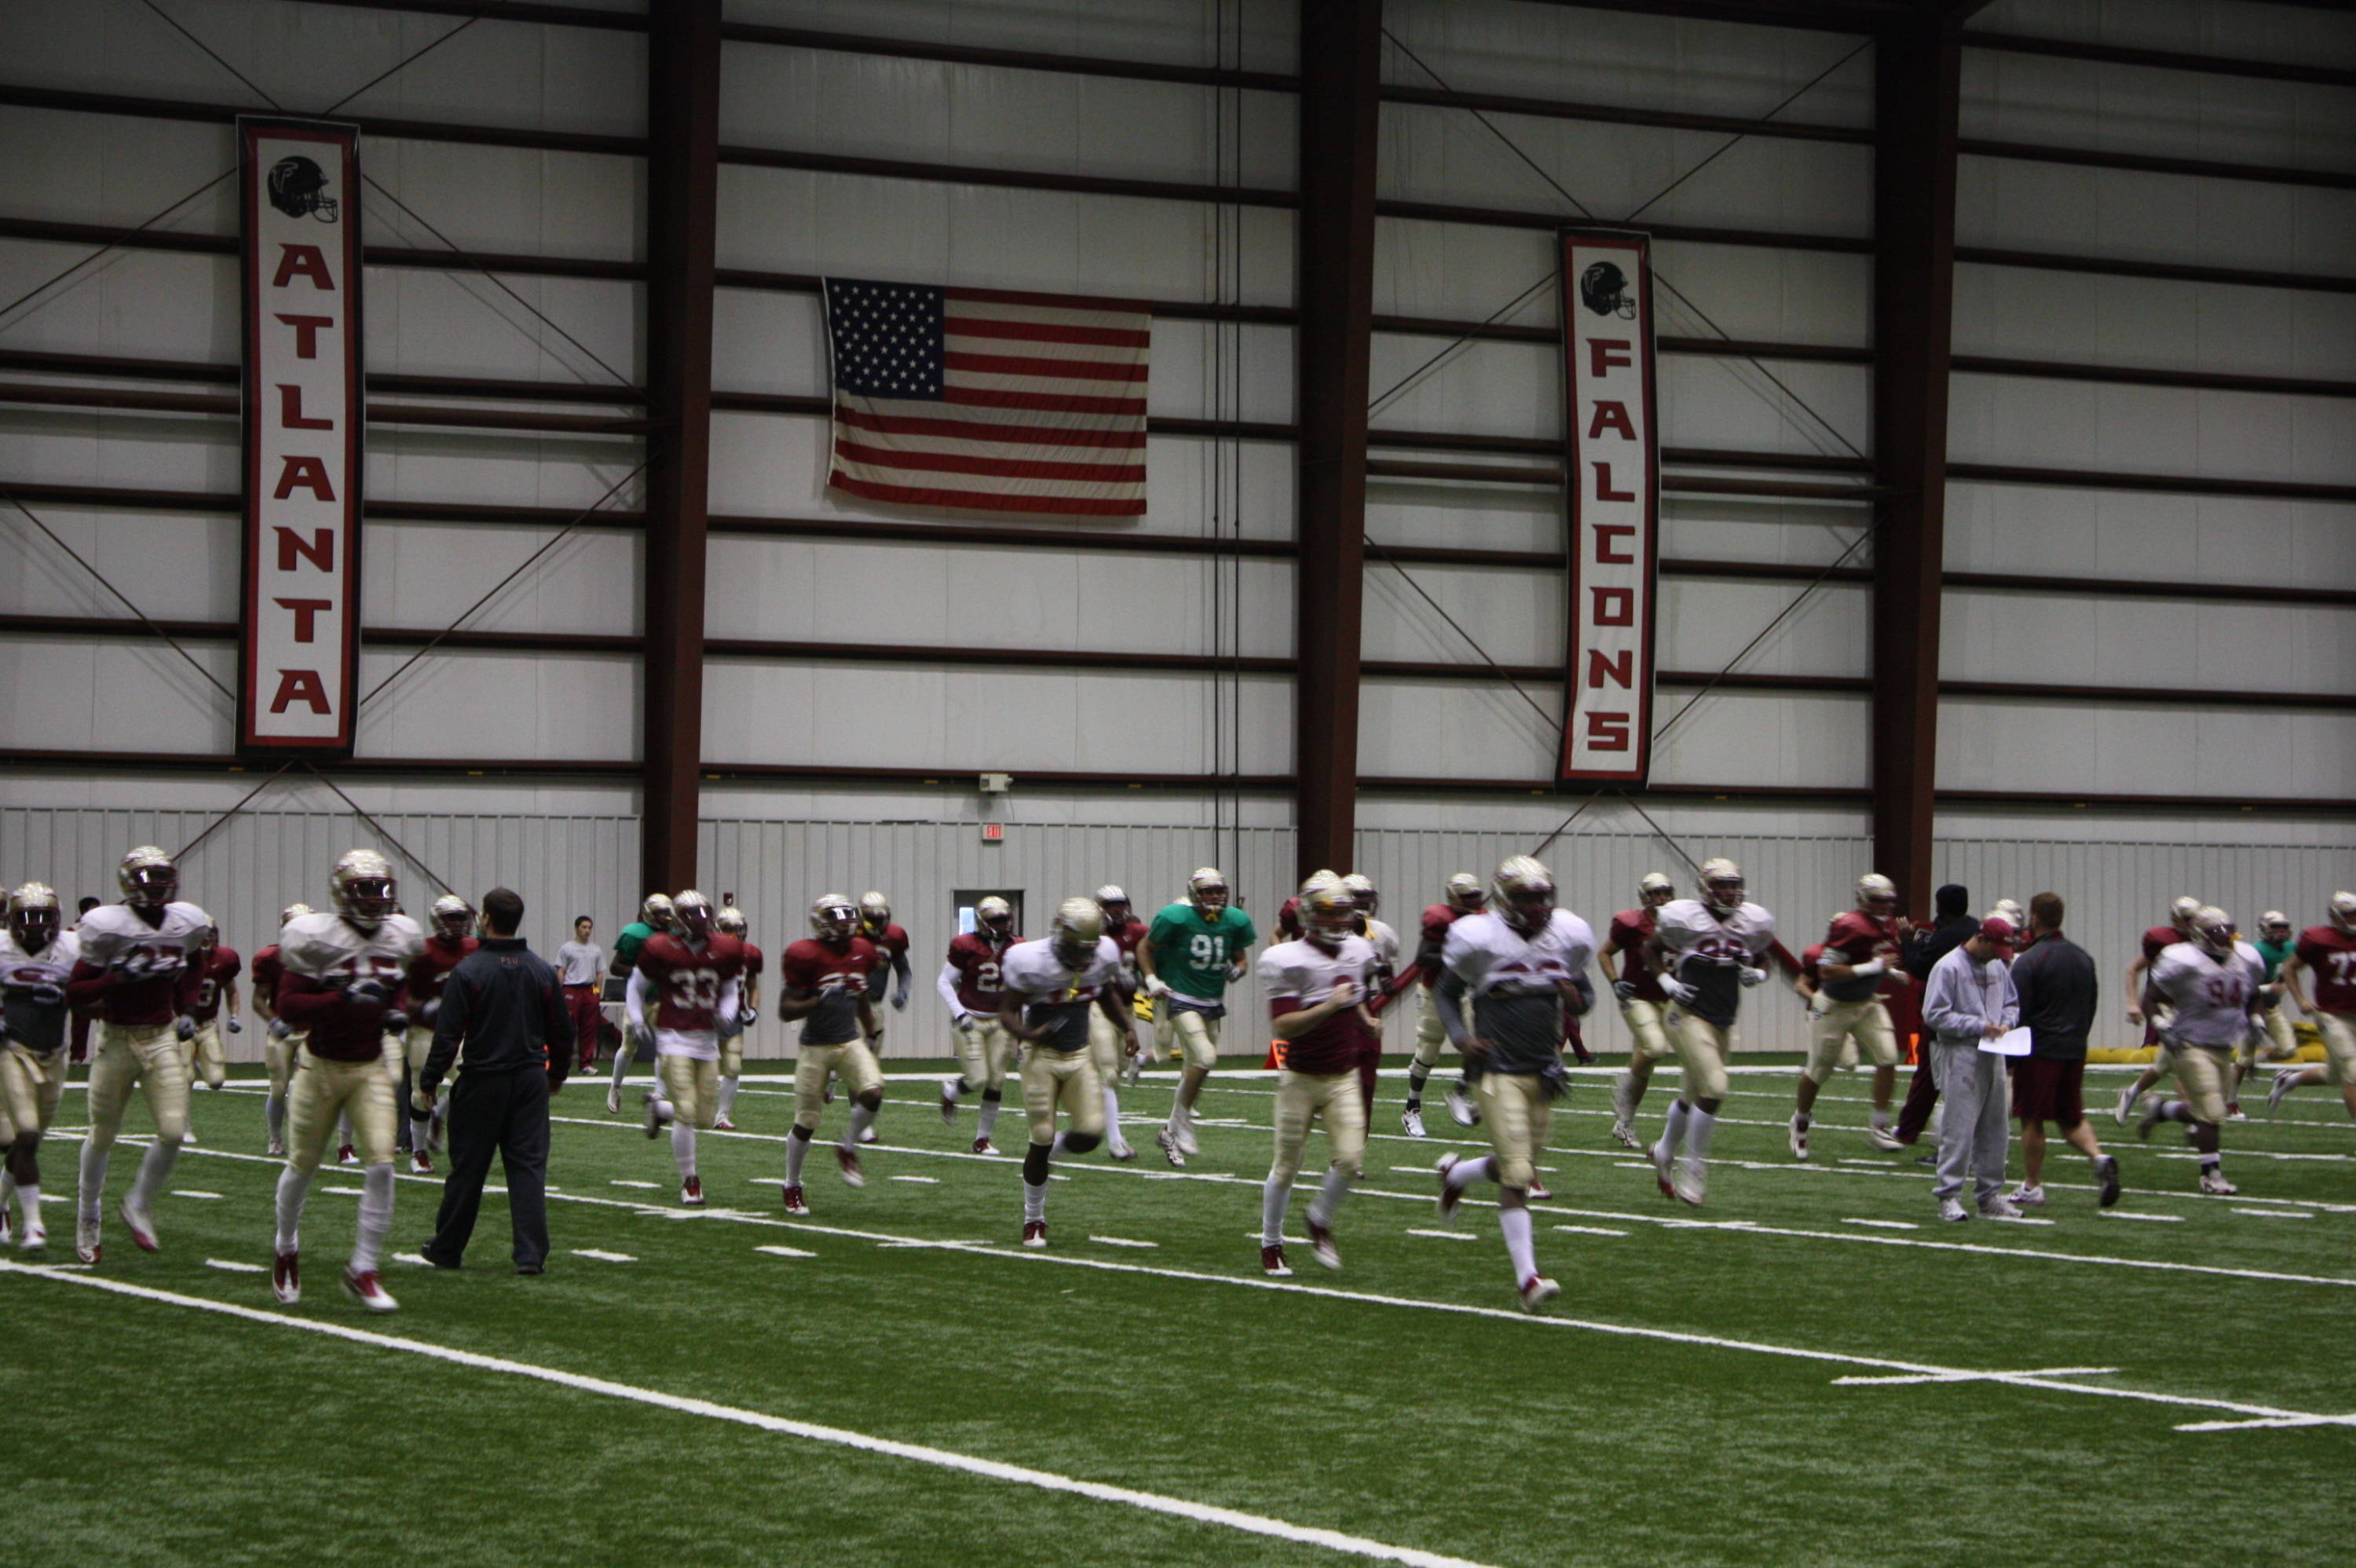 The indoor facility is both spacious and more comfortable as temperatures dipped below 20 degrees.